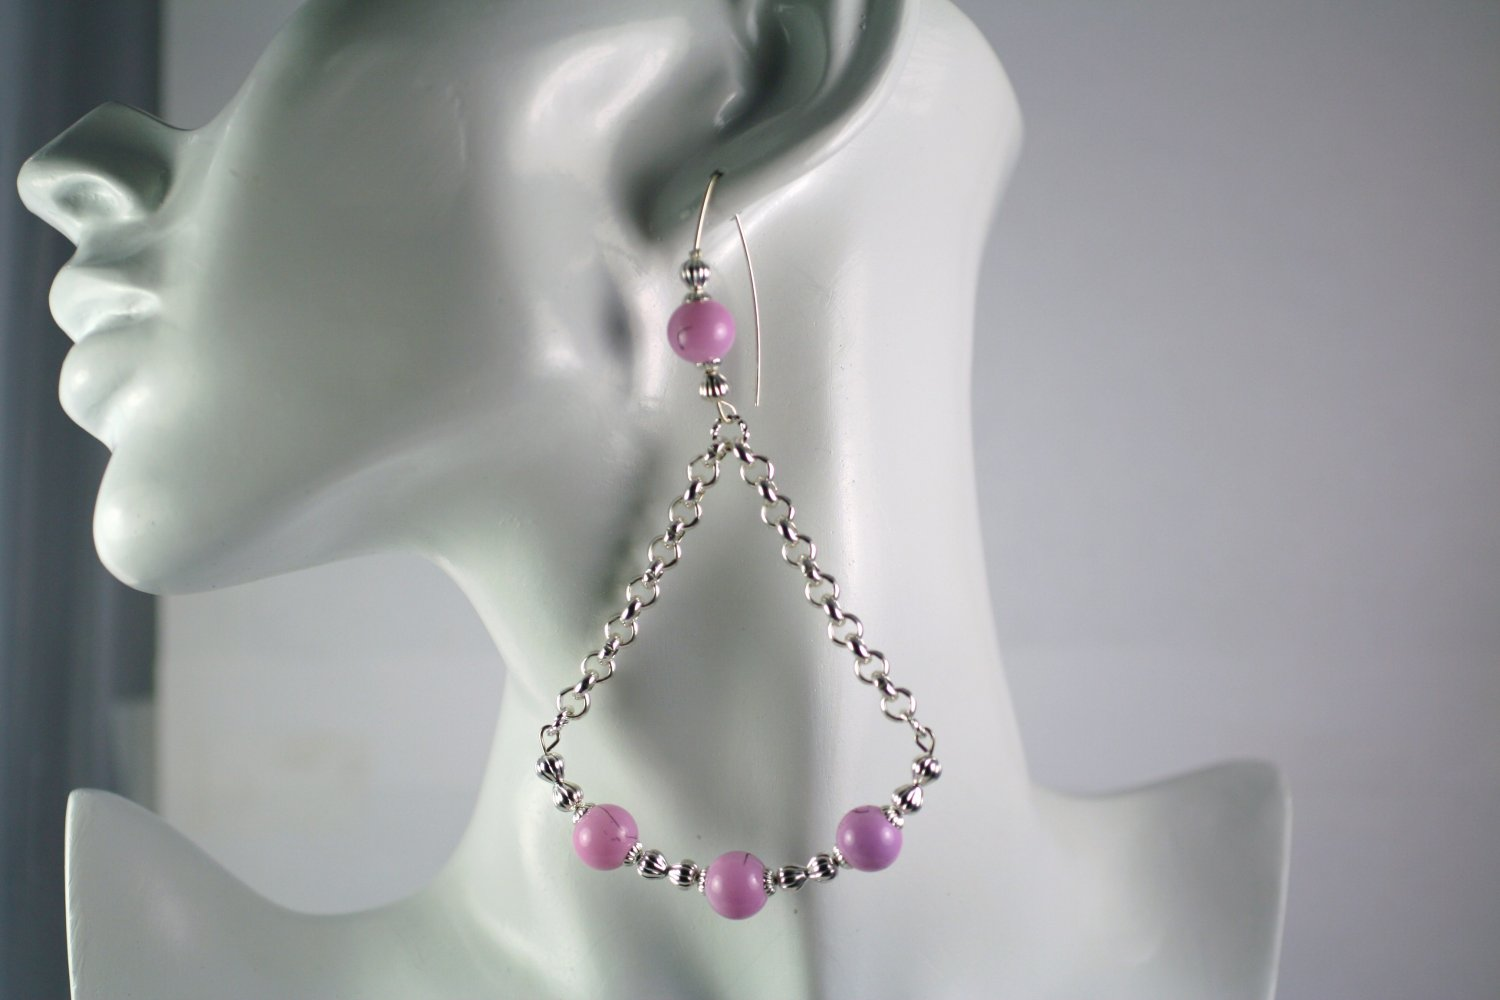 Diva Large Silver Earrings with Purple Glass Beads  4.50 inch Drop  Handcrafted Jewelry